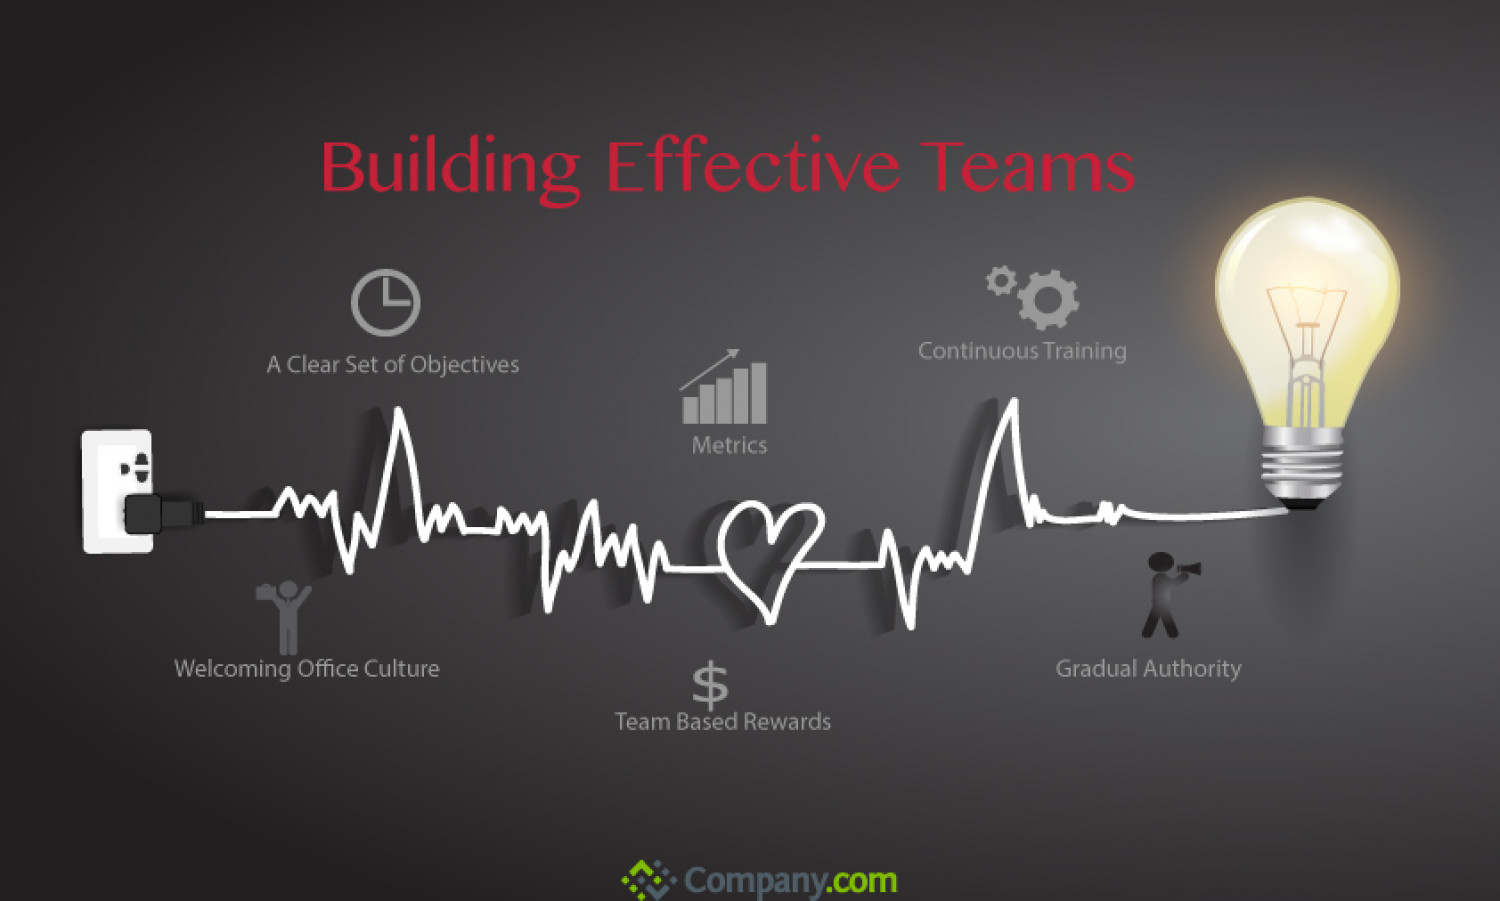 Building Effective Teams Infographic